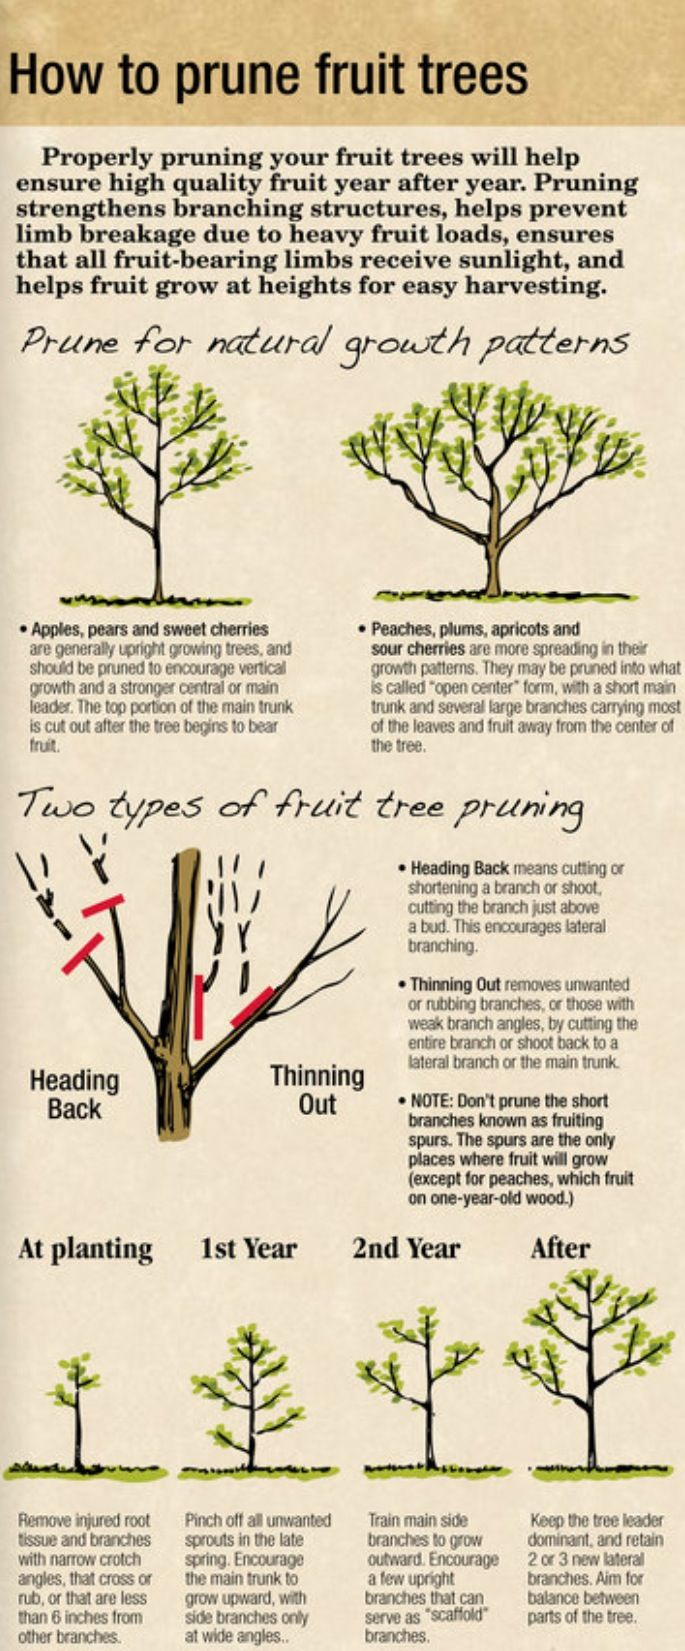 HOW TO PRUNE FRUIT TREES arborday.org